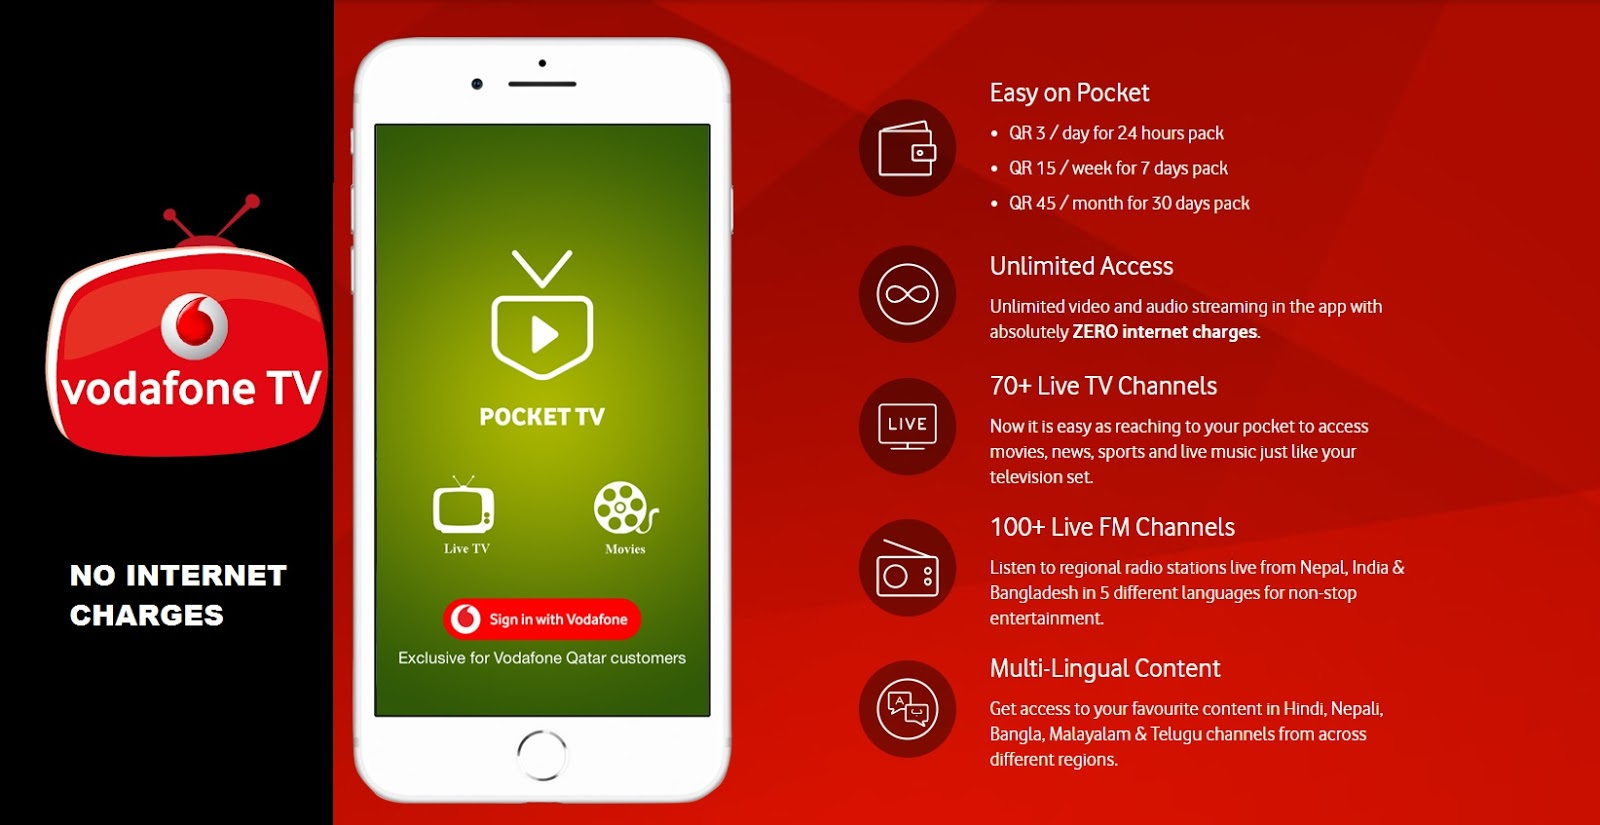 Vodafone Launches Pocket TV with No Internet Charges